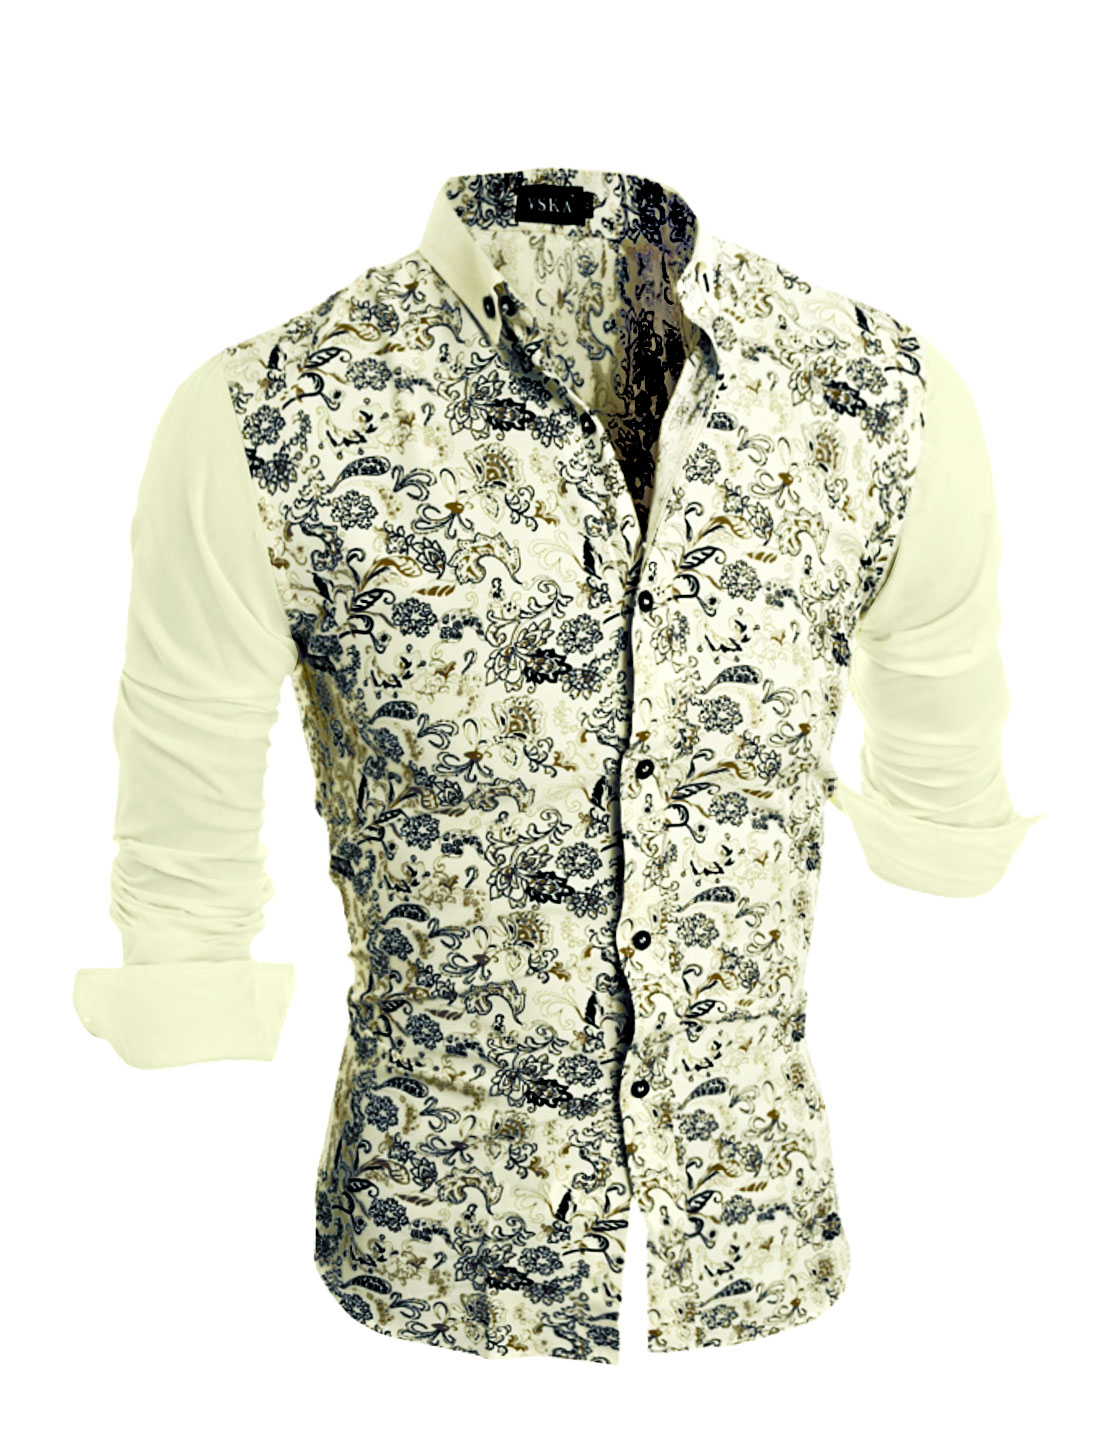 Man Long Sleeves Collared Buttoned Flower Shirt Yellow S